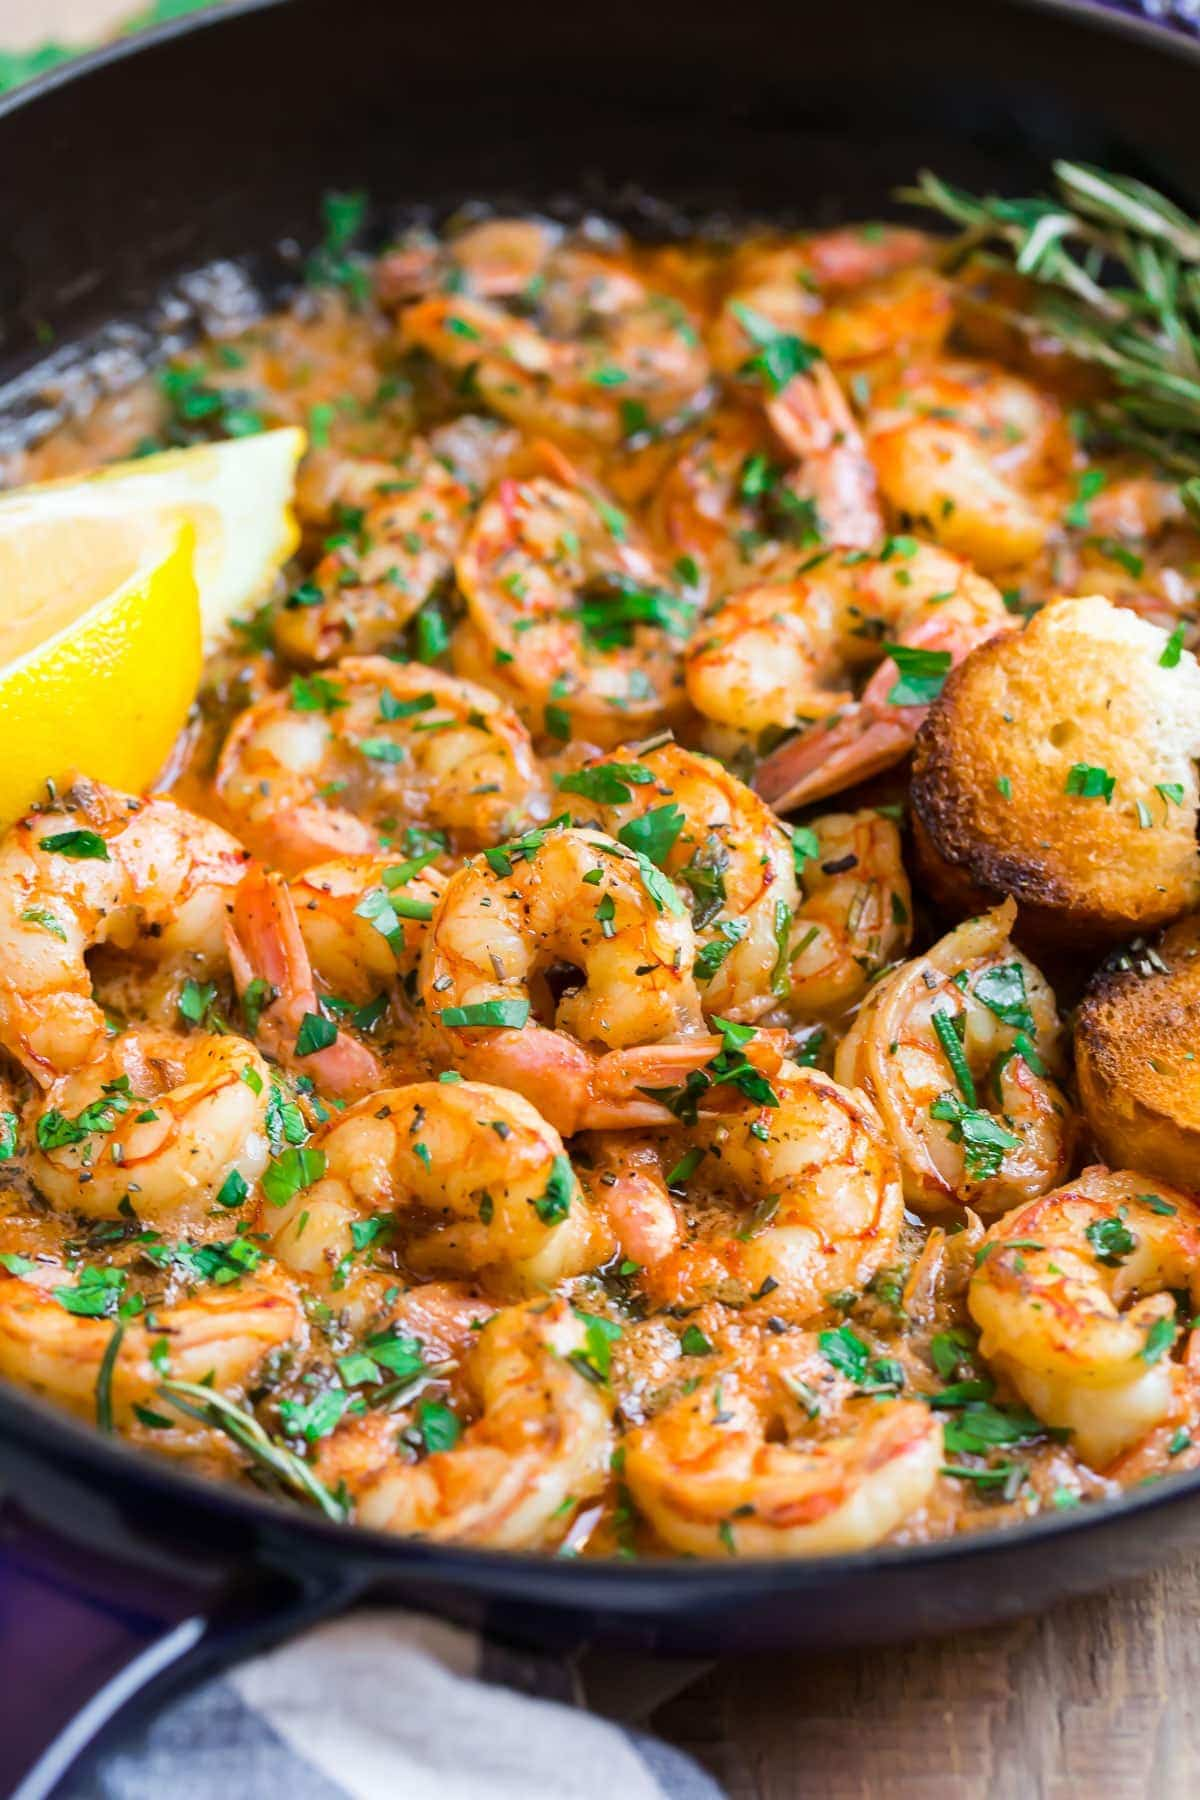 Garlic Butter Shrimp With Lemon Best Ever Recipe,Thin Chicken Breast Recipes Healthy